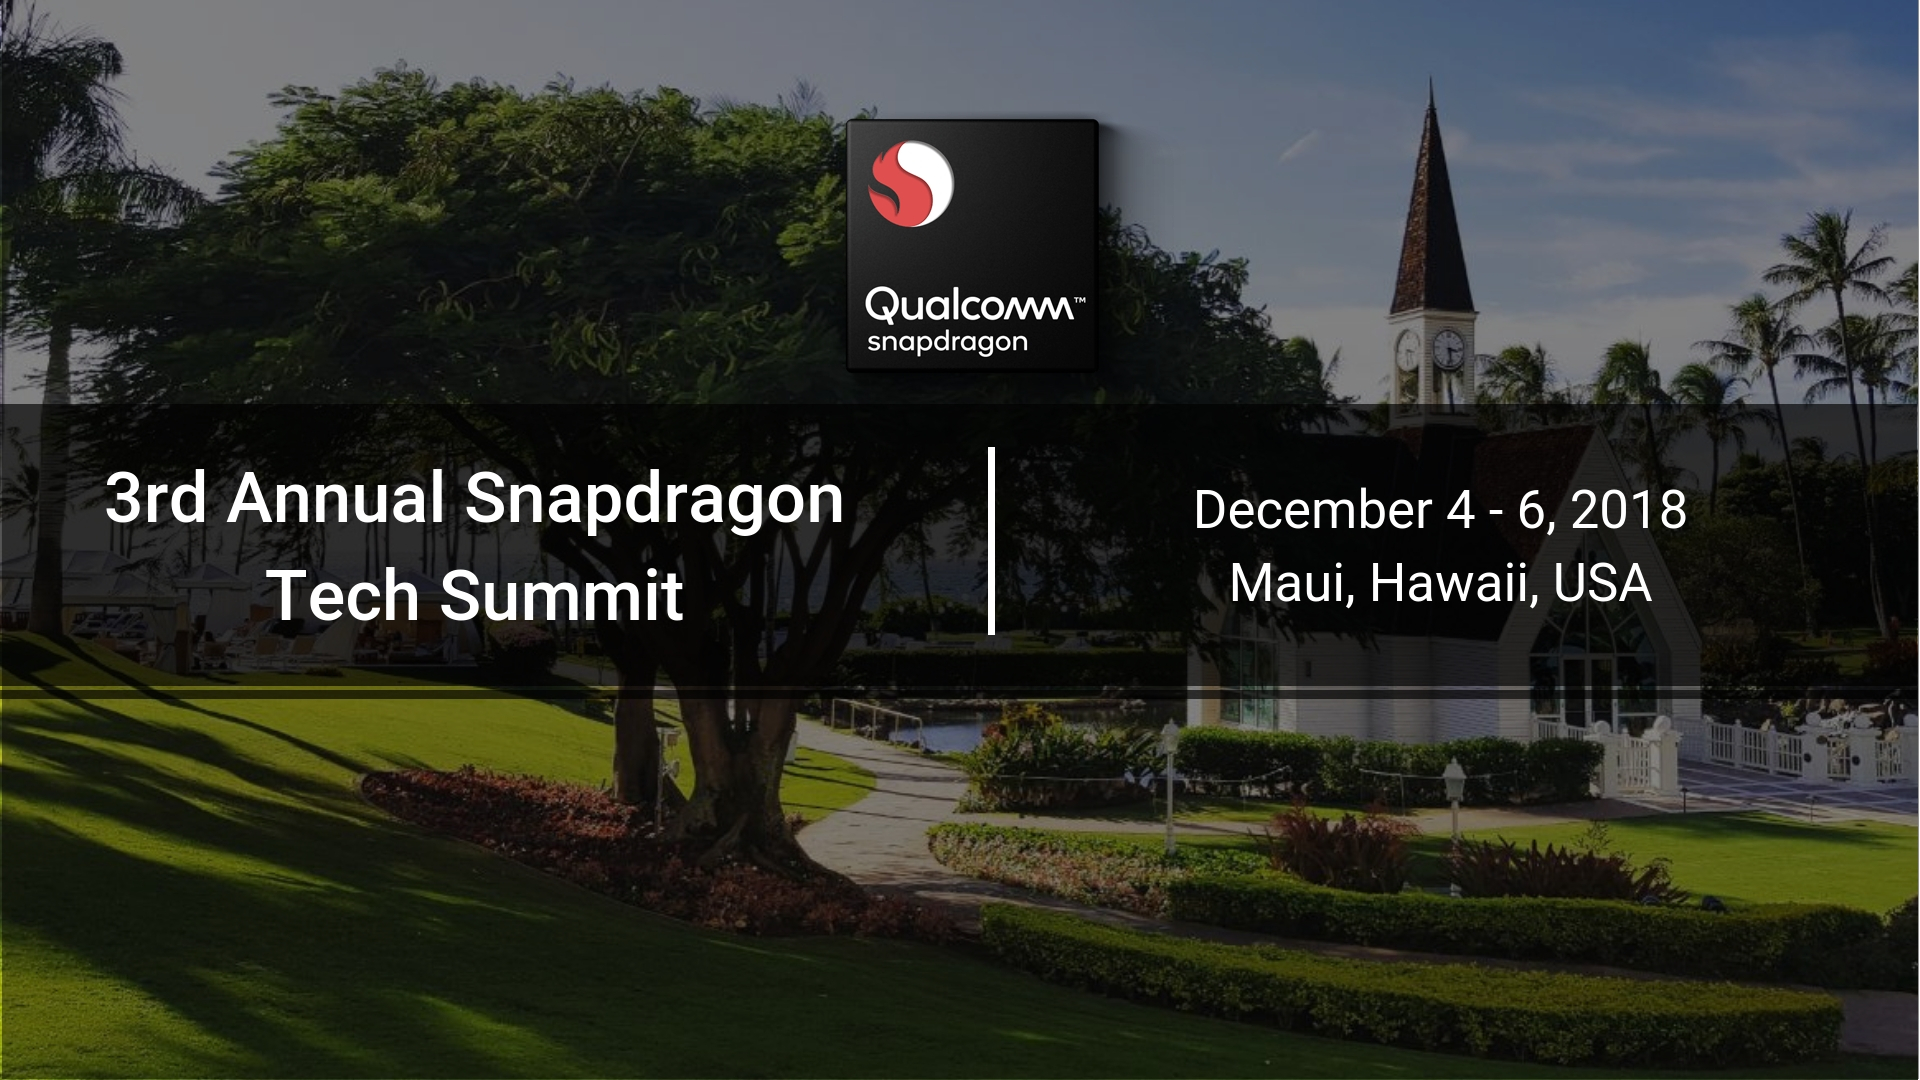 3rd Annual Snapdragon Technology Summit